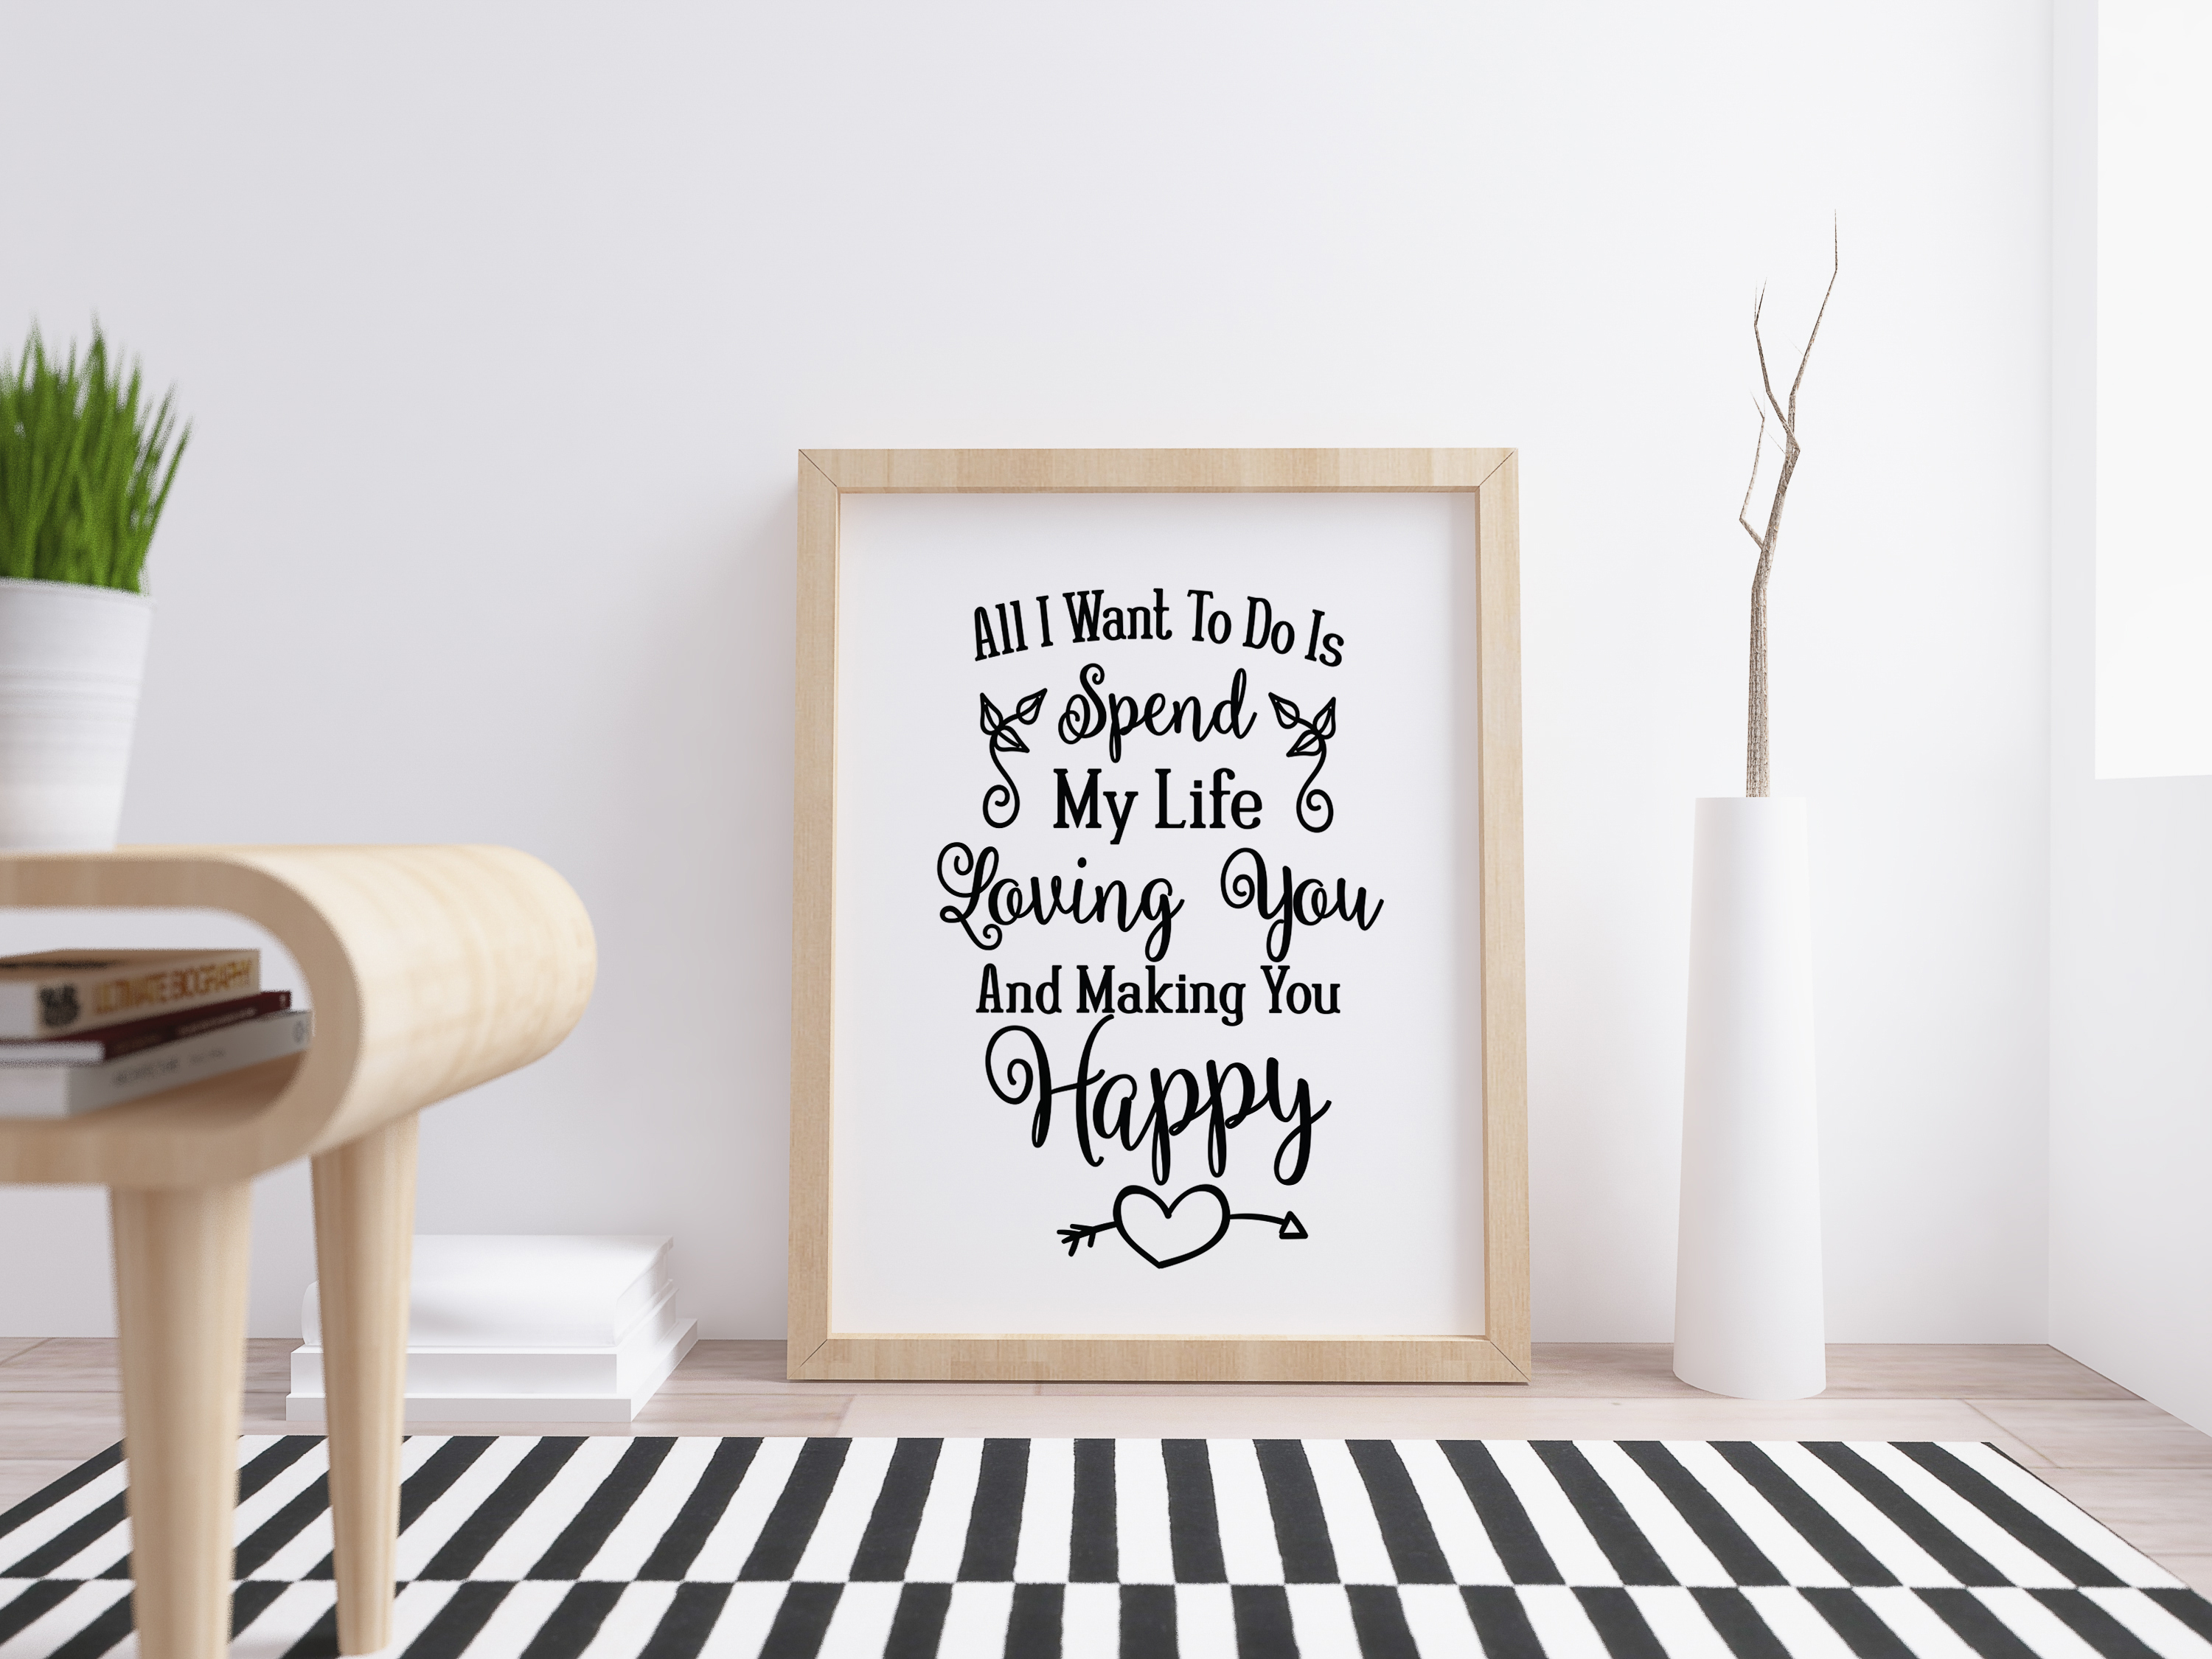 I want to make you happy, love svg, cut file, dxf, eps, svg example image 2